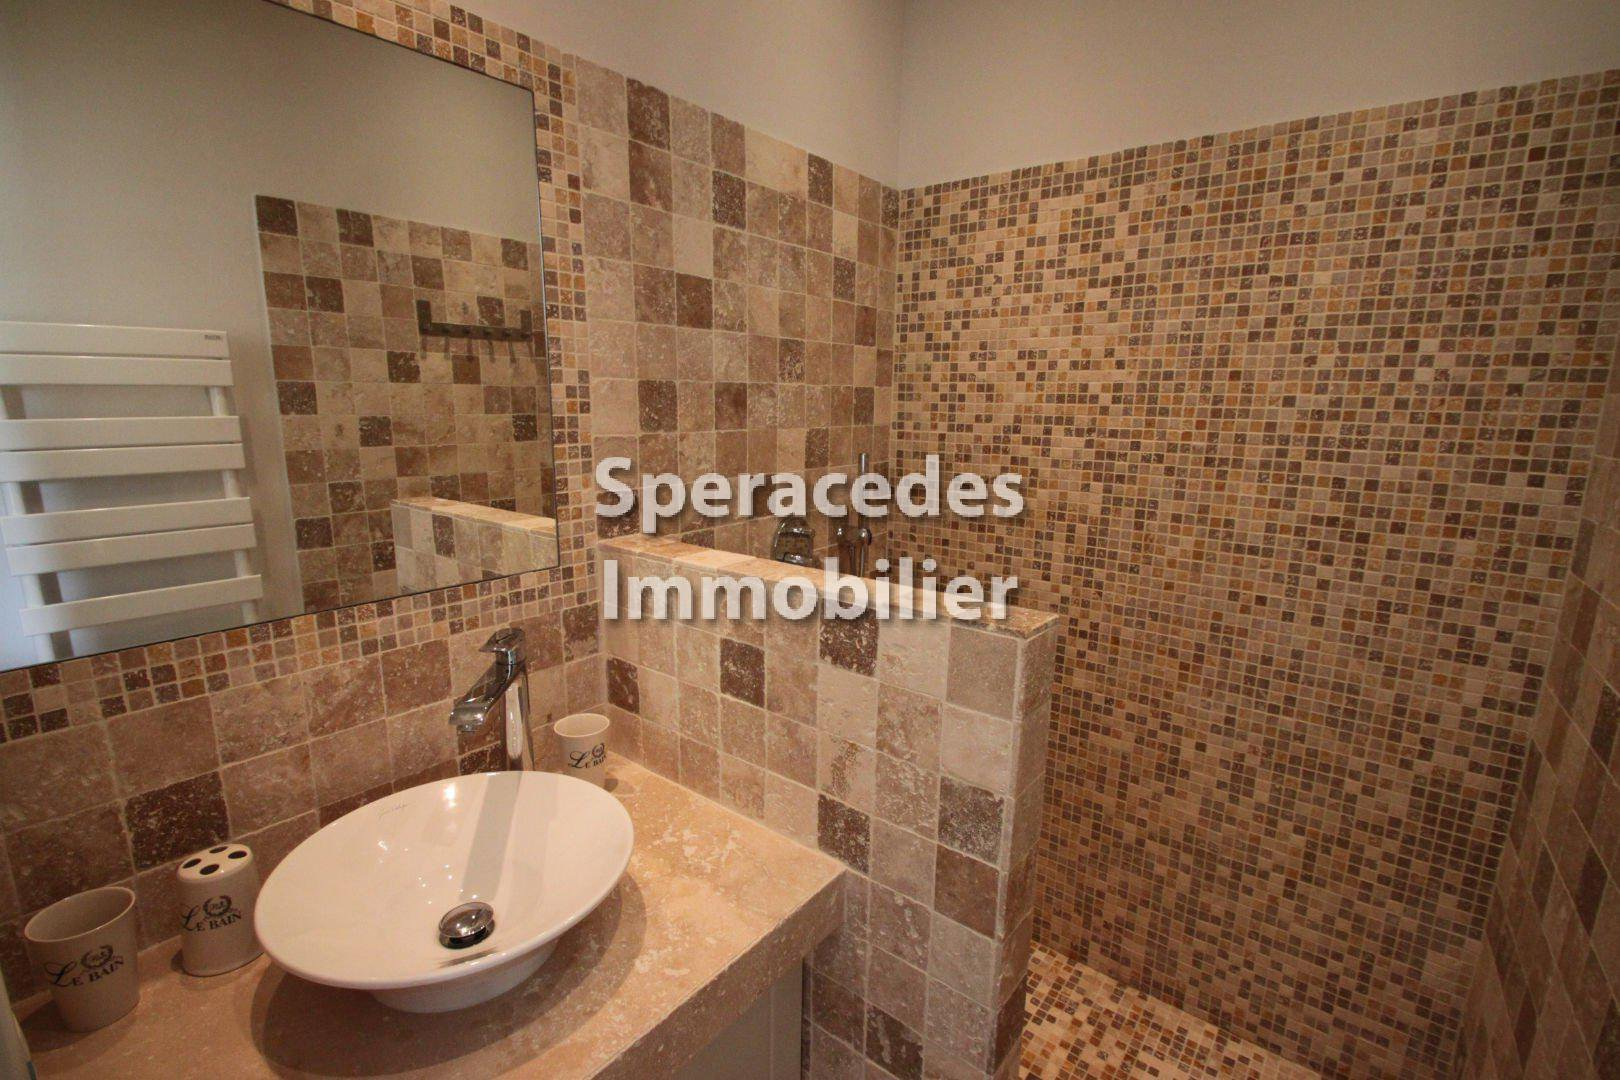 Speracedes - THIS PROPERTY WILL TAKE YOUR BREATH AWAY: with  around 50 m of facade facing towards the Mediterranean!